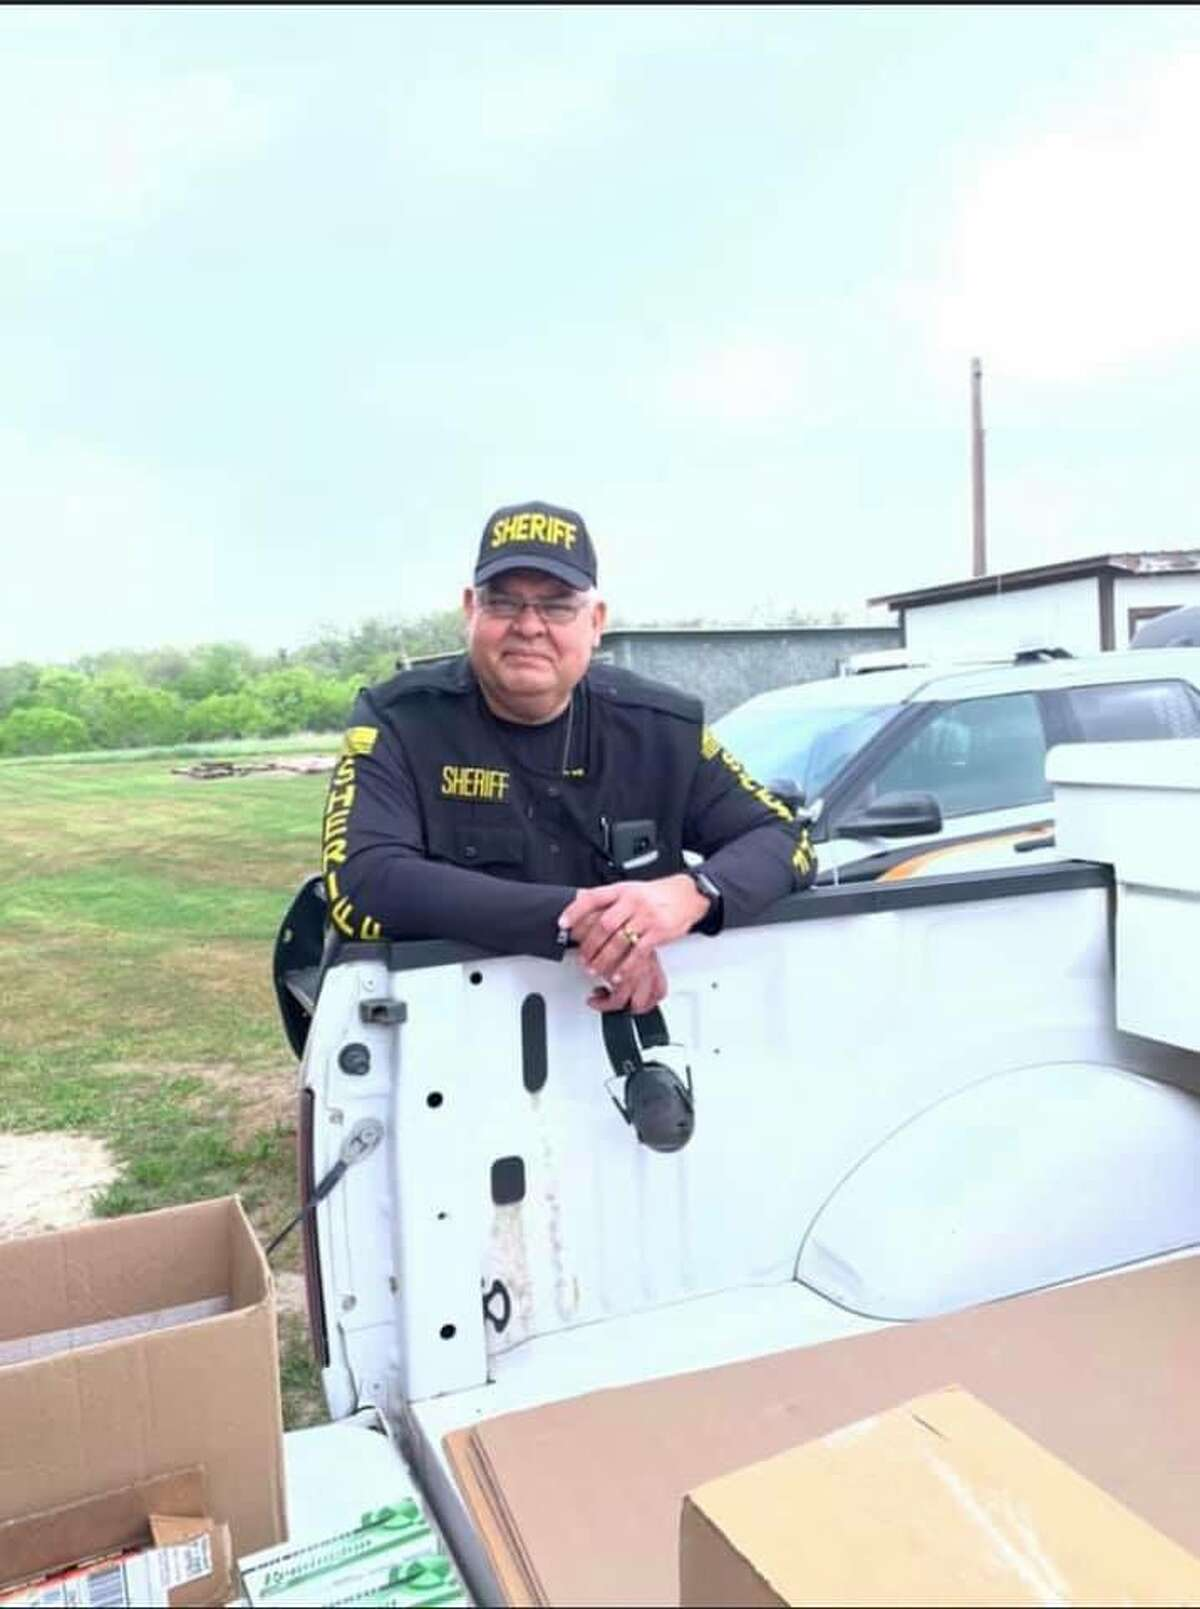 Gonzales County Sheriff Robert Ynclan died Sunday of COVID-19, according to facebook post by the sheriff's office. He was 63.